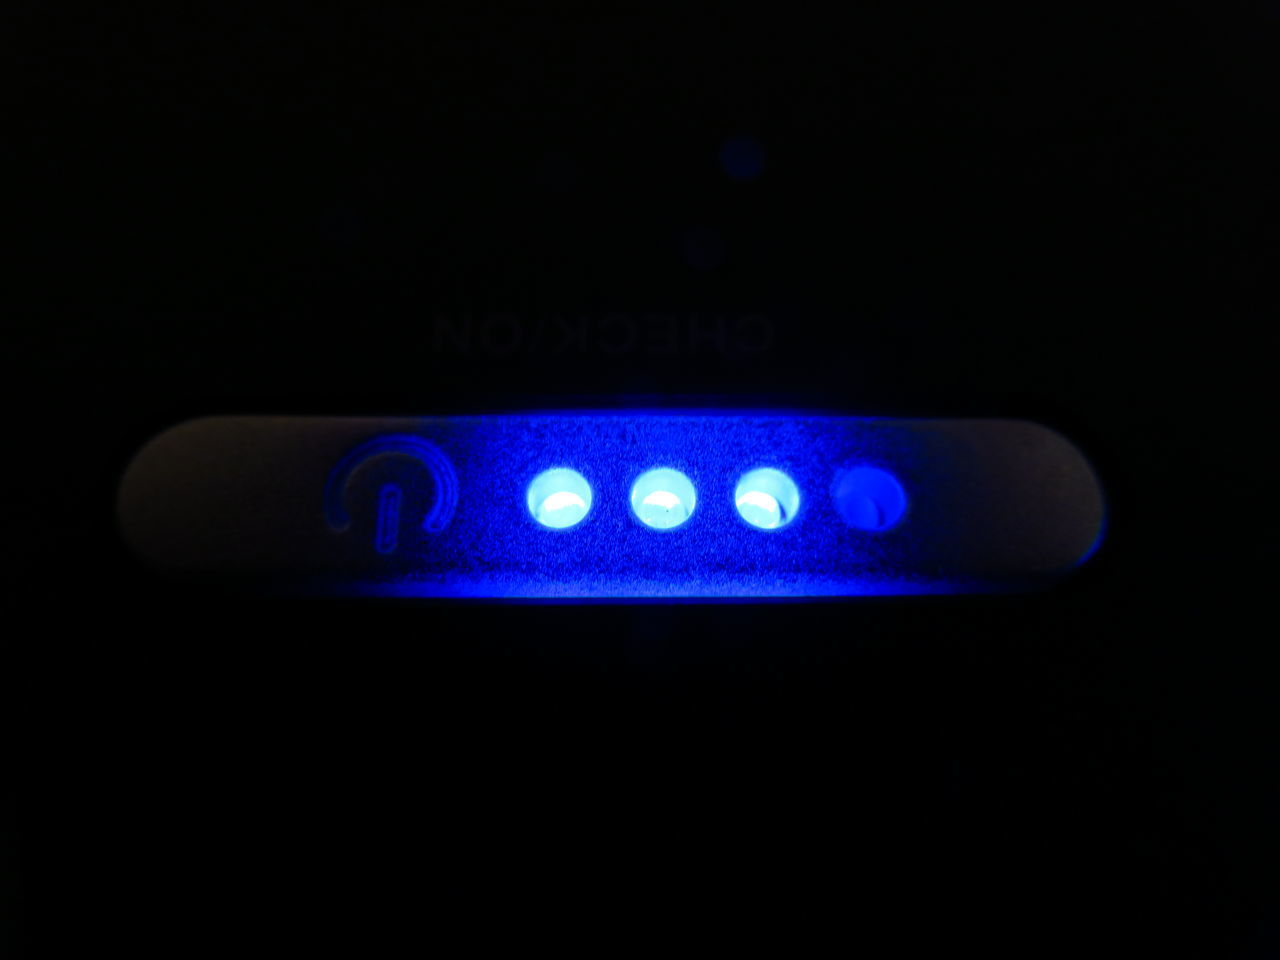 Power indicator Battery Charge Blue Charge Close-up Dark Blue Electric Light Electricity  Indicator Light Led Lights  Light Night No People Power Supply Status Technology